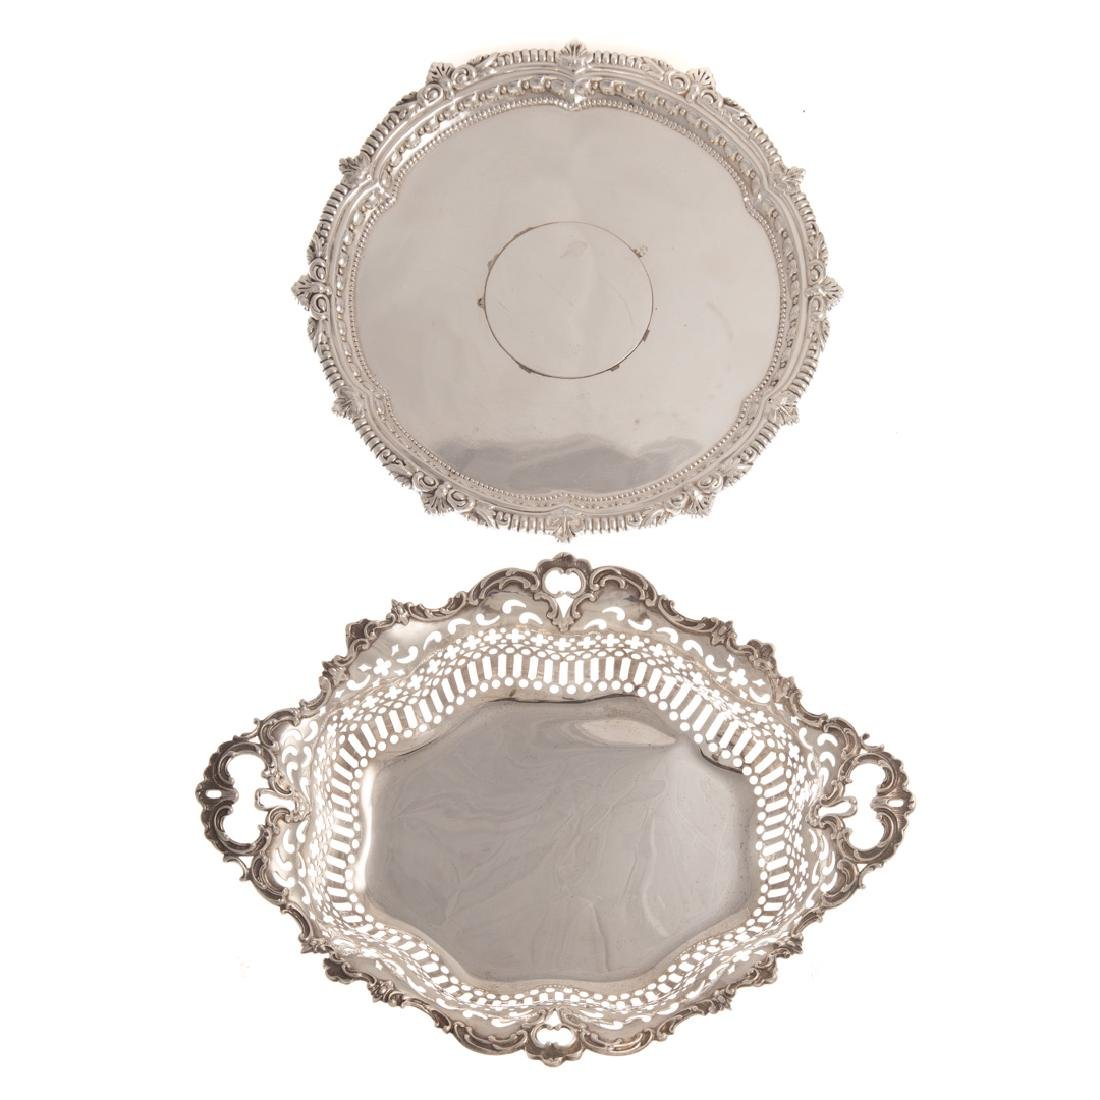 Two sterling items retailed by J E Caldwell